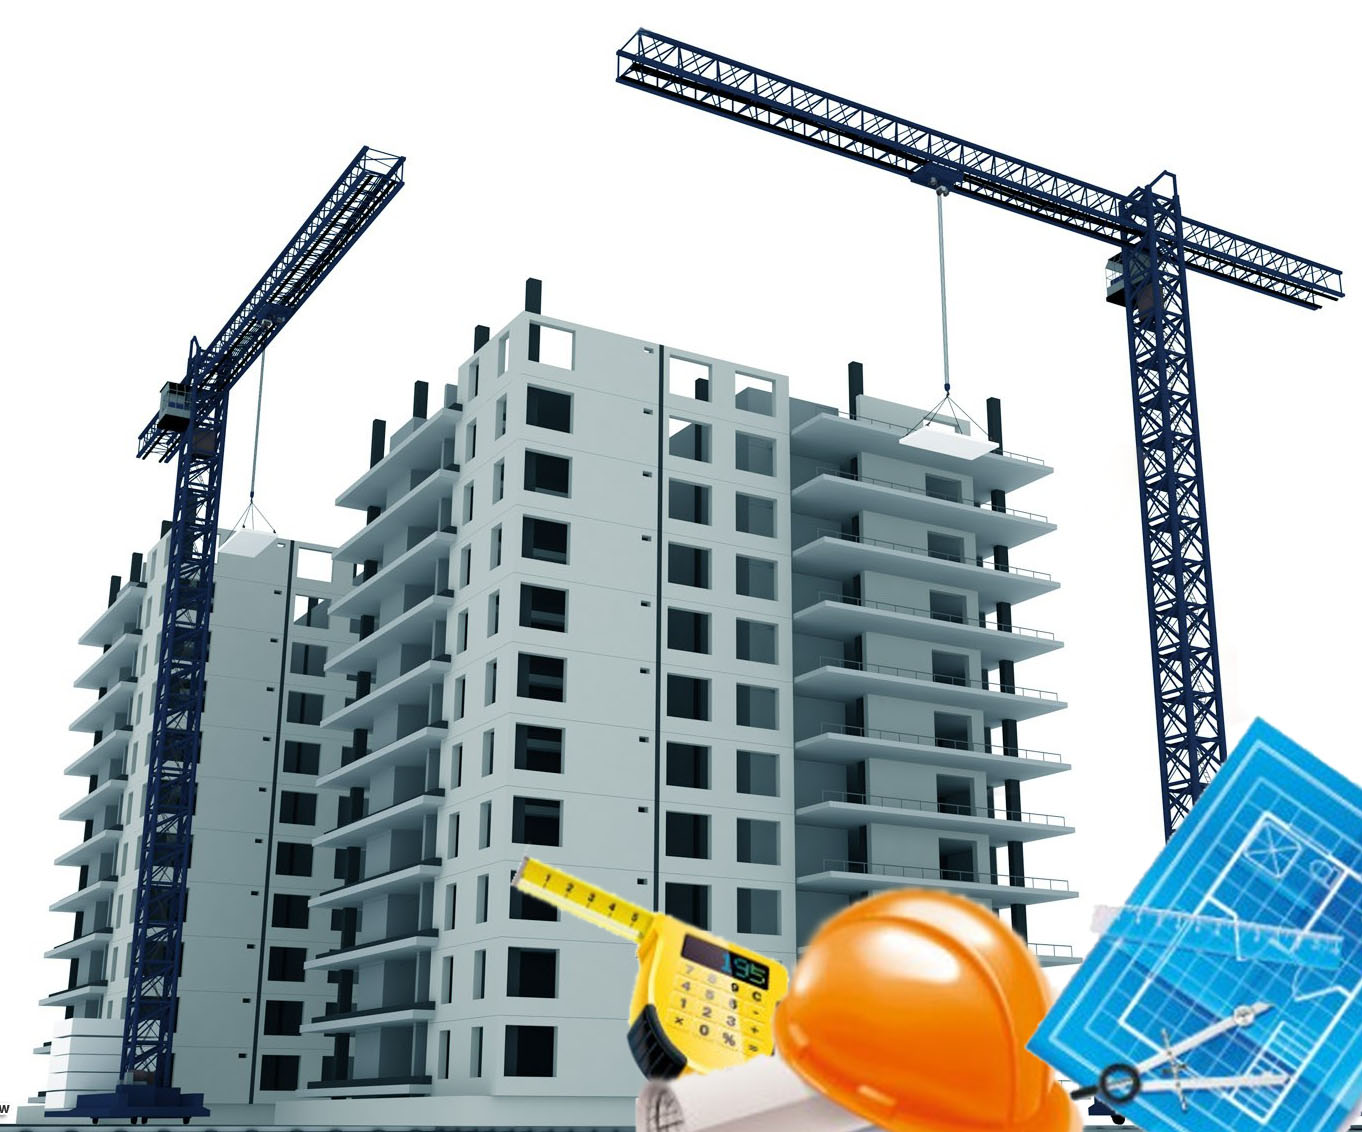 Overview of Construction and RealEstate Industries in Pakistan